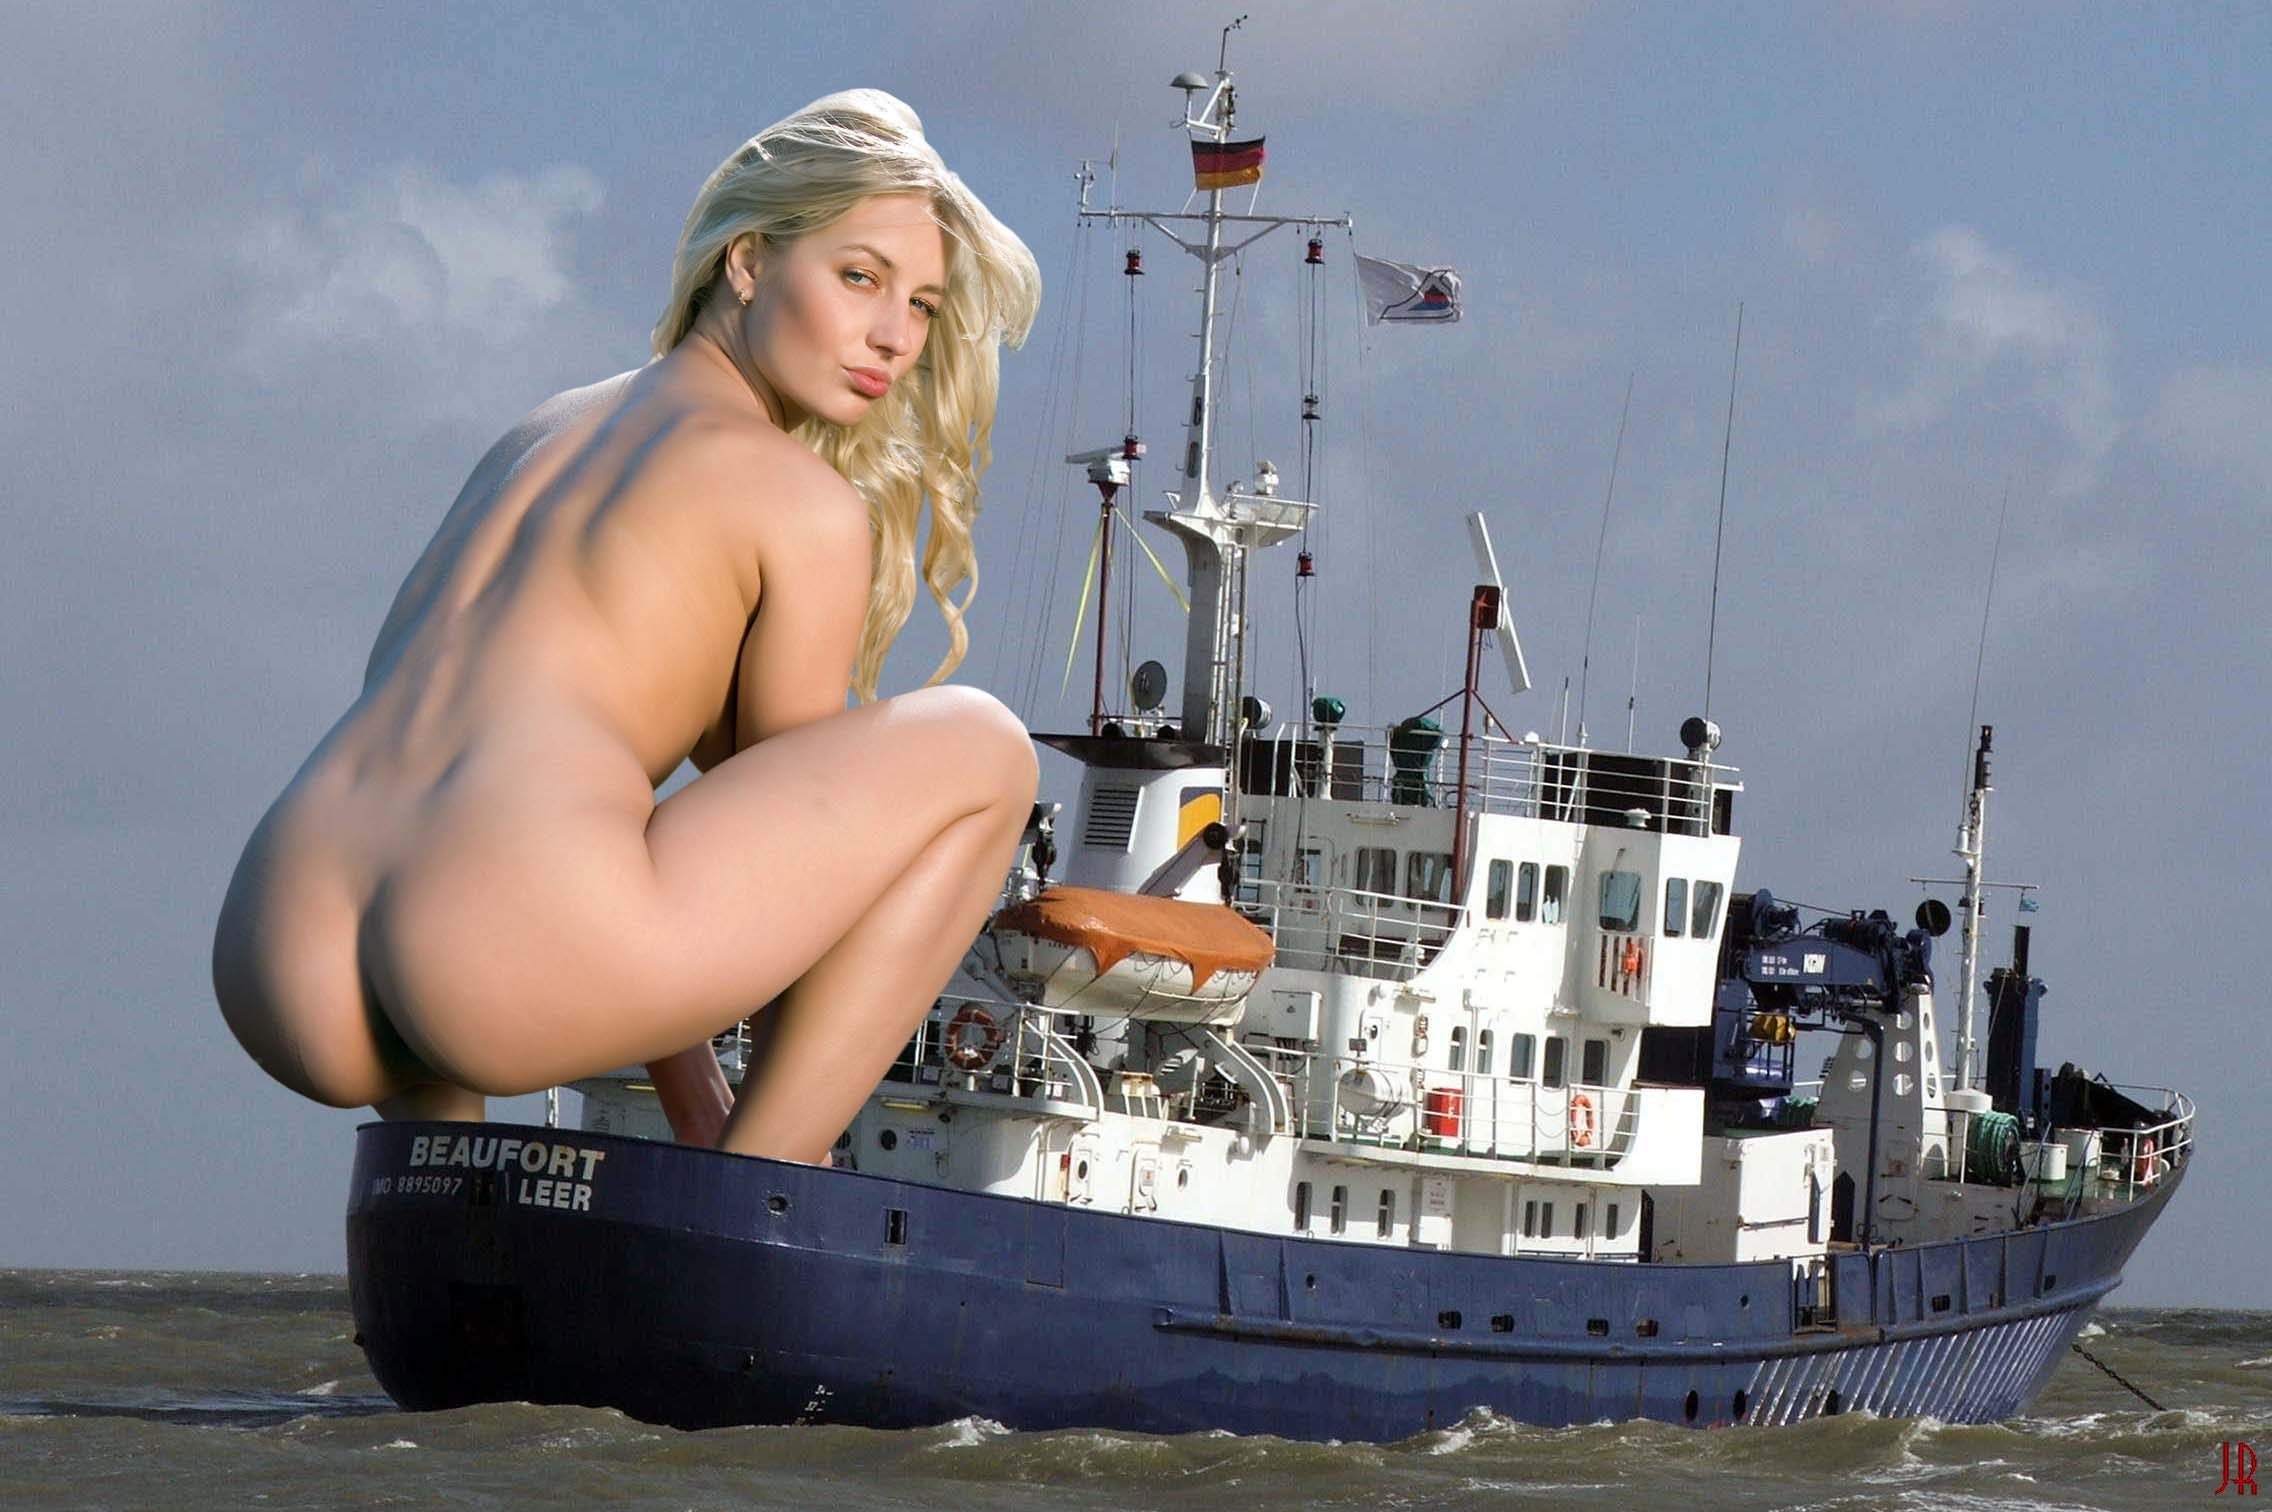 84394%20 %20big ass%20blonde%20giantess%20lips%20looking at viewer%20looking back%20nude%20ship ... mature ladies might not feel too intimidated and can avoid the issues of ...